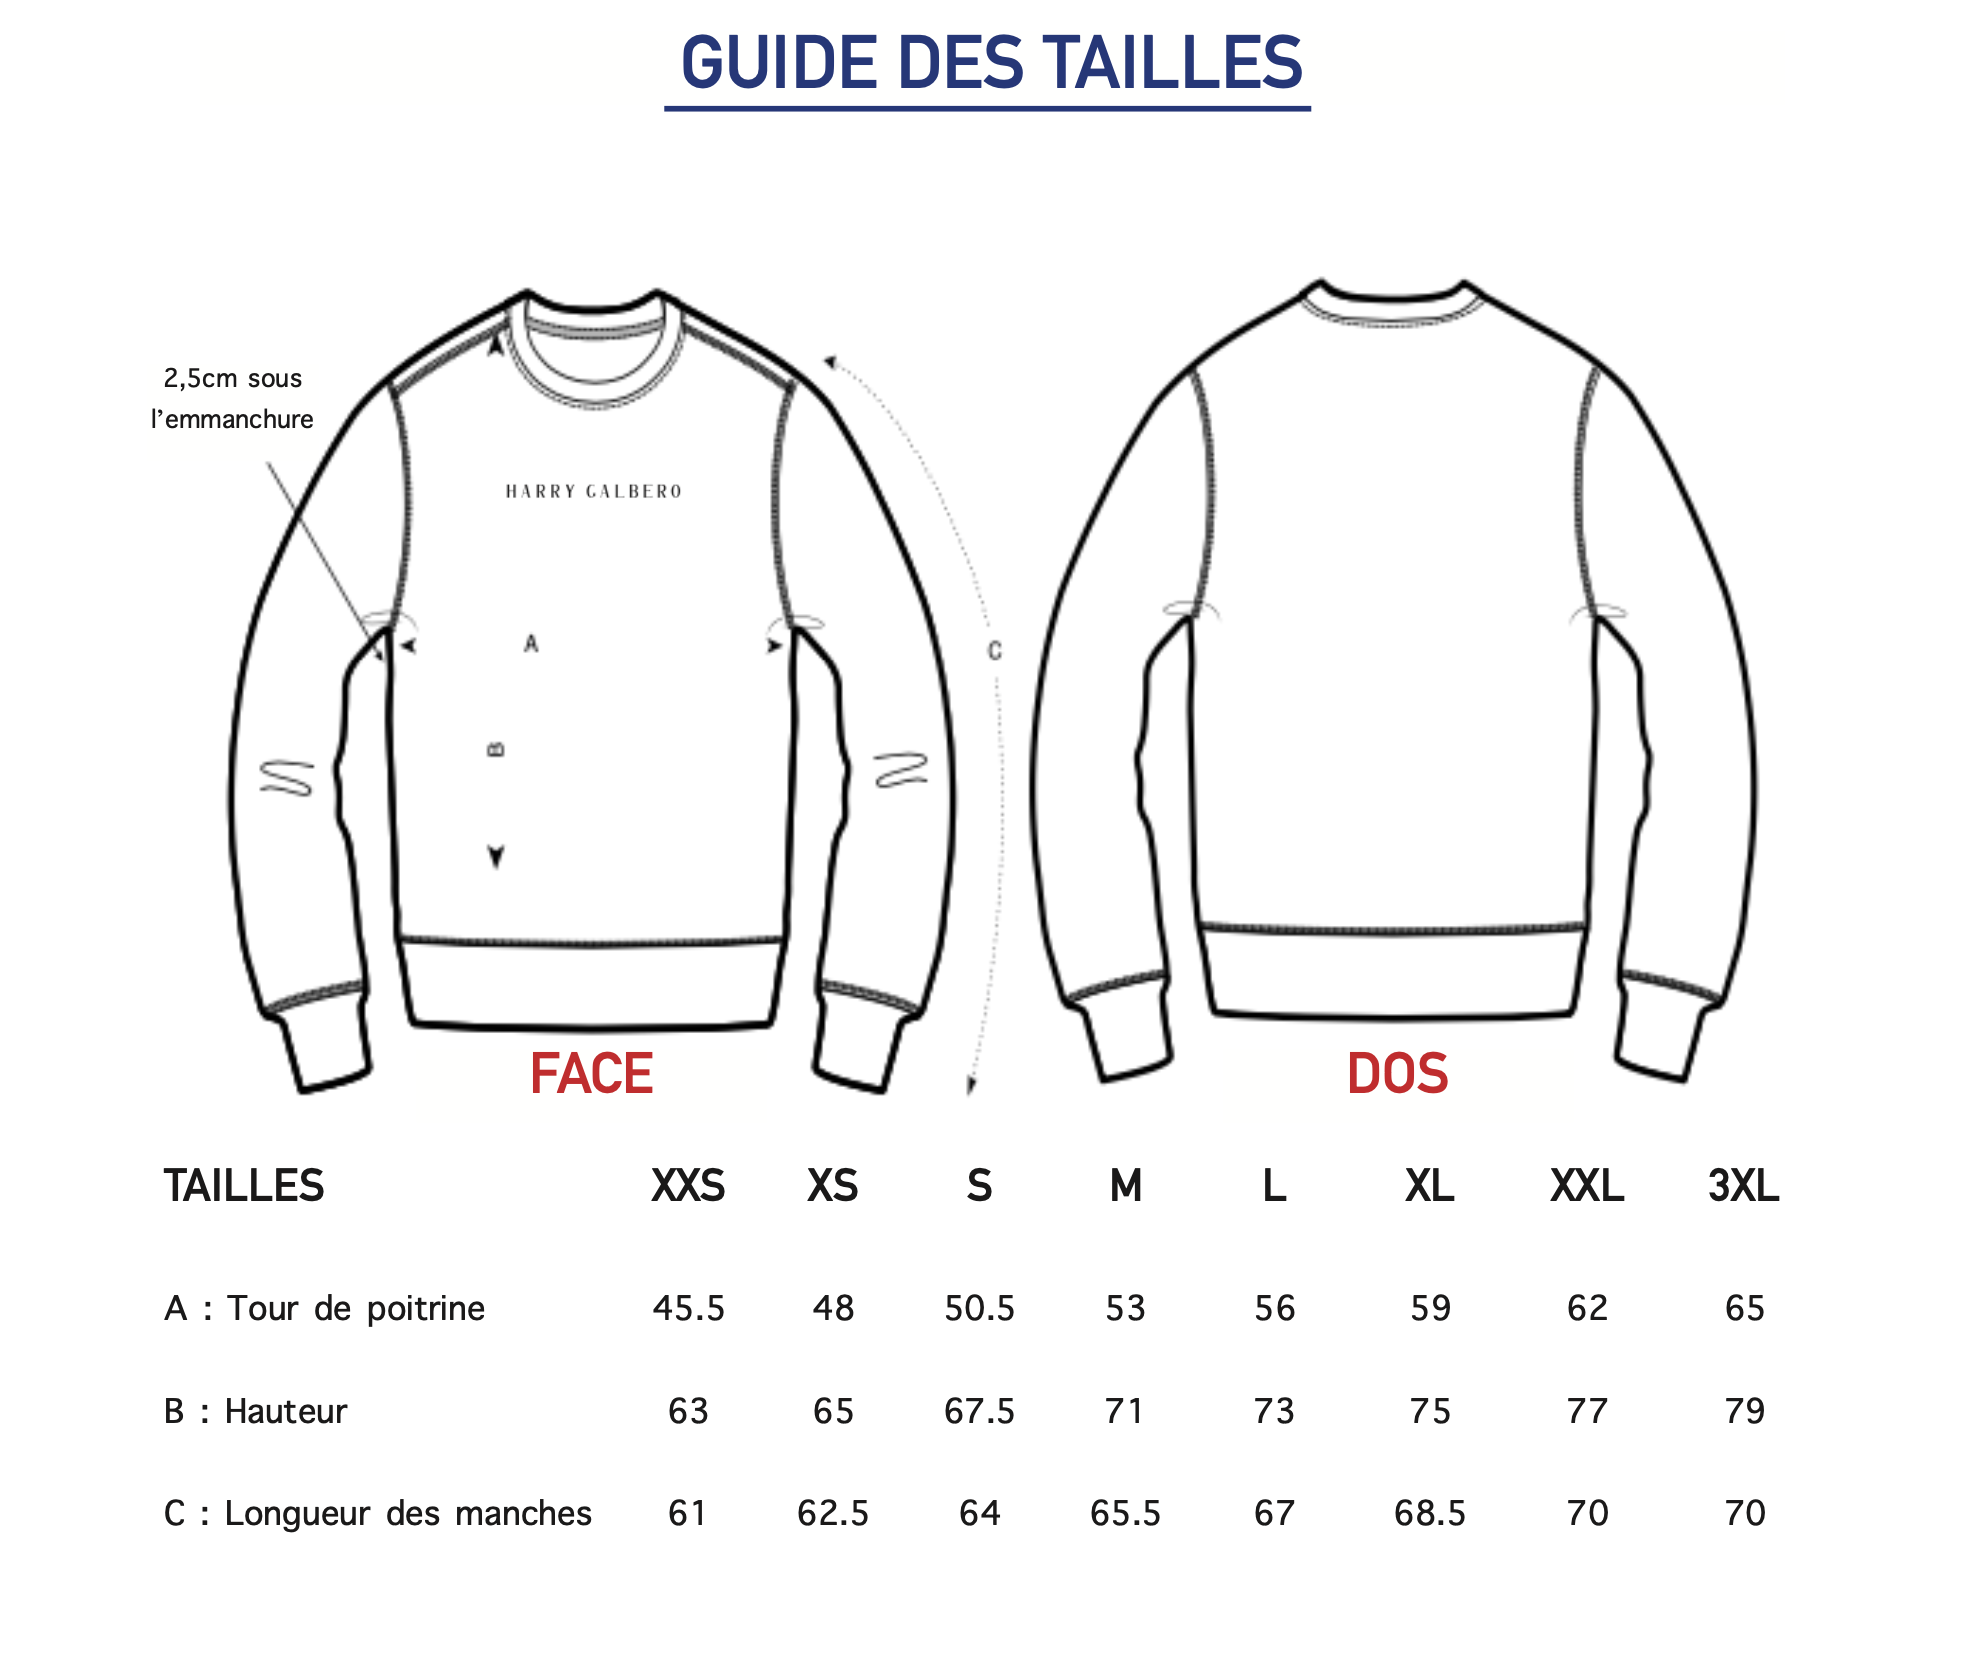 Guide des tailles Sweat Summer Femme harry galbero